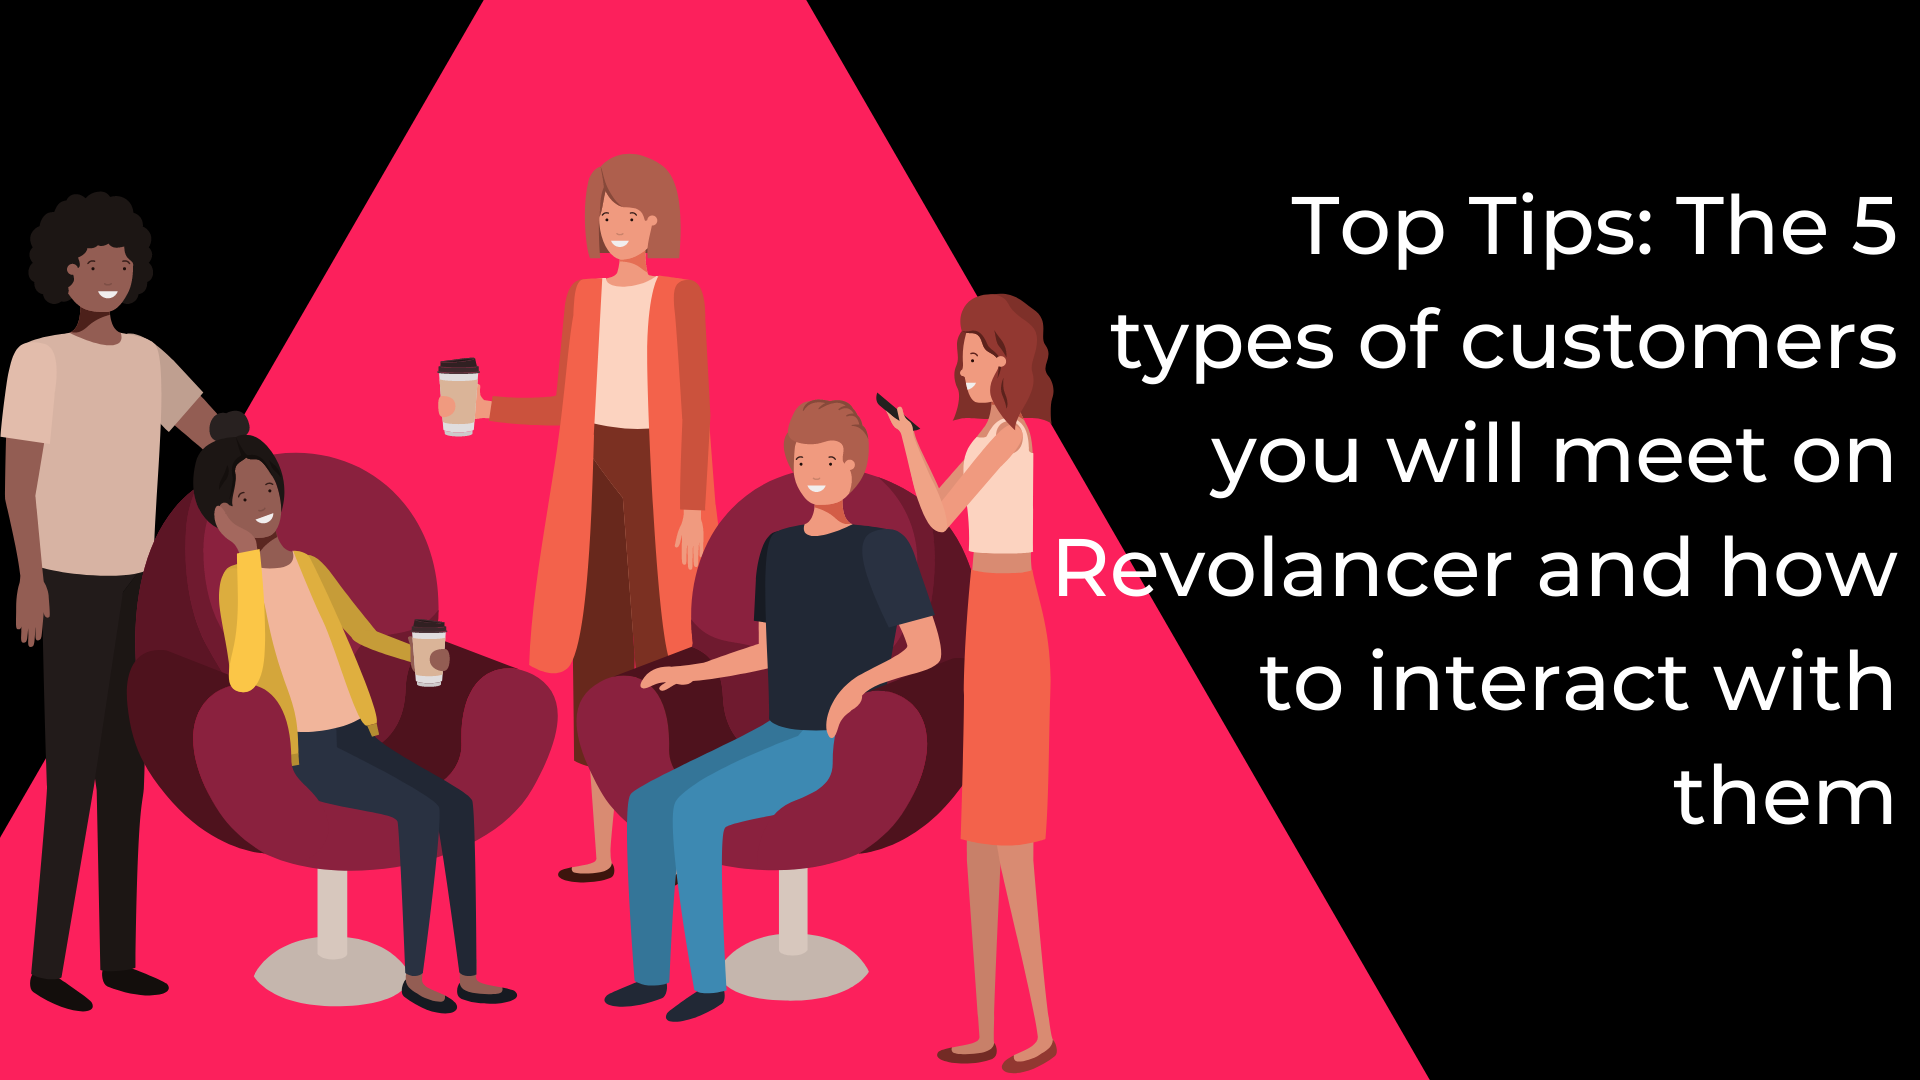 Top Tips: The 5 types of customers you will meet on Revolancer and how to interact with them